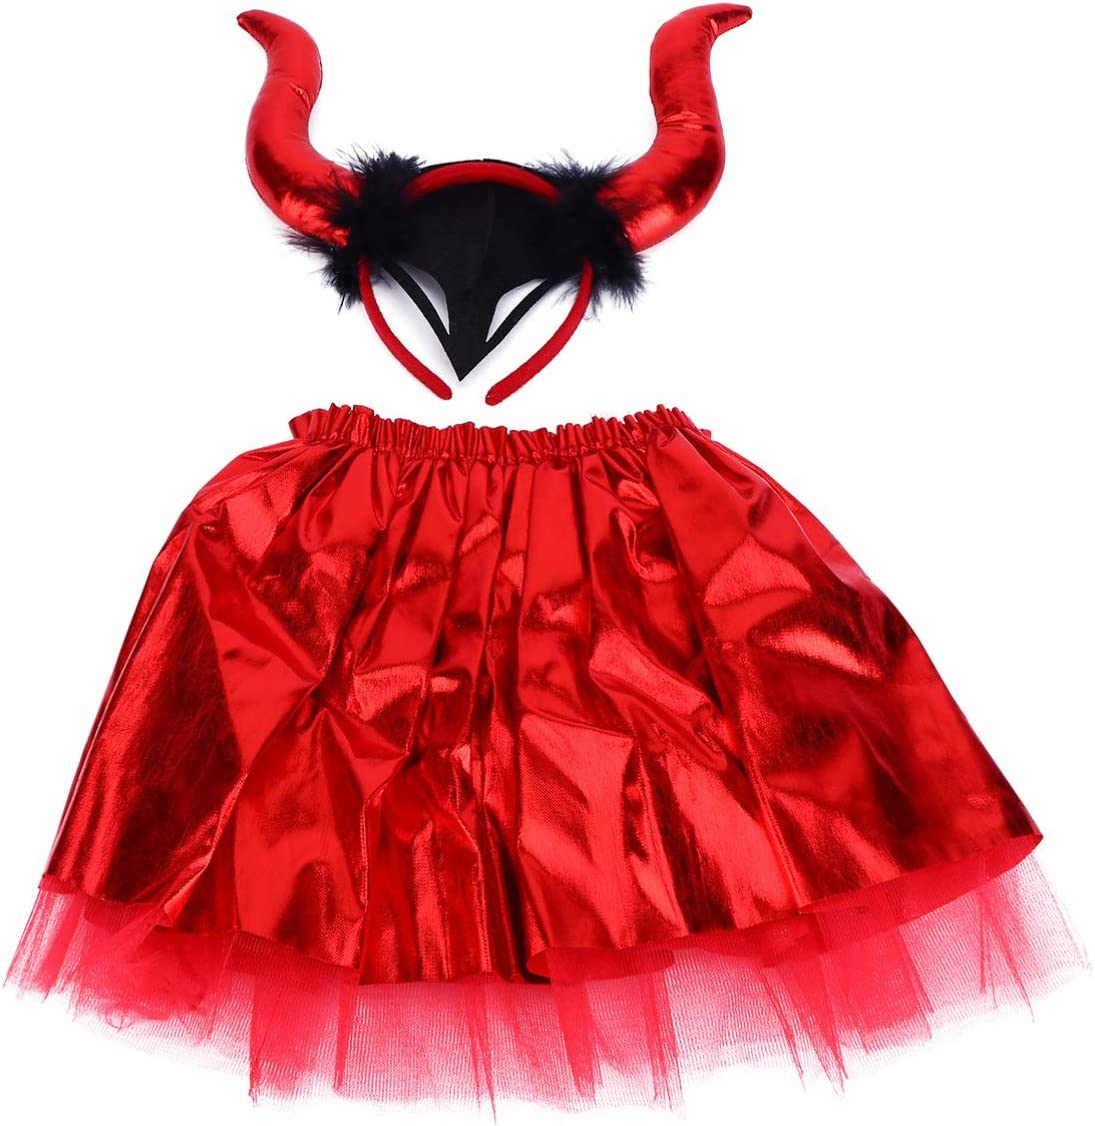 Clispeed Halloween Costume Dress Bull-Horn Skirt with Devil Horn Outfit for Girl Halloween Stage Perfomance Holiday Party